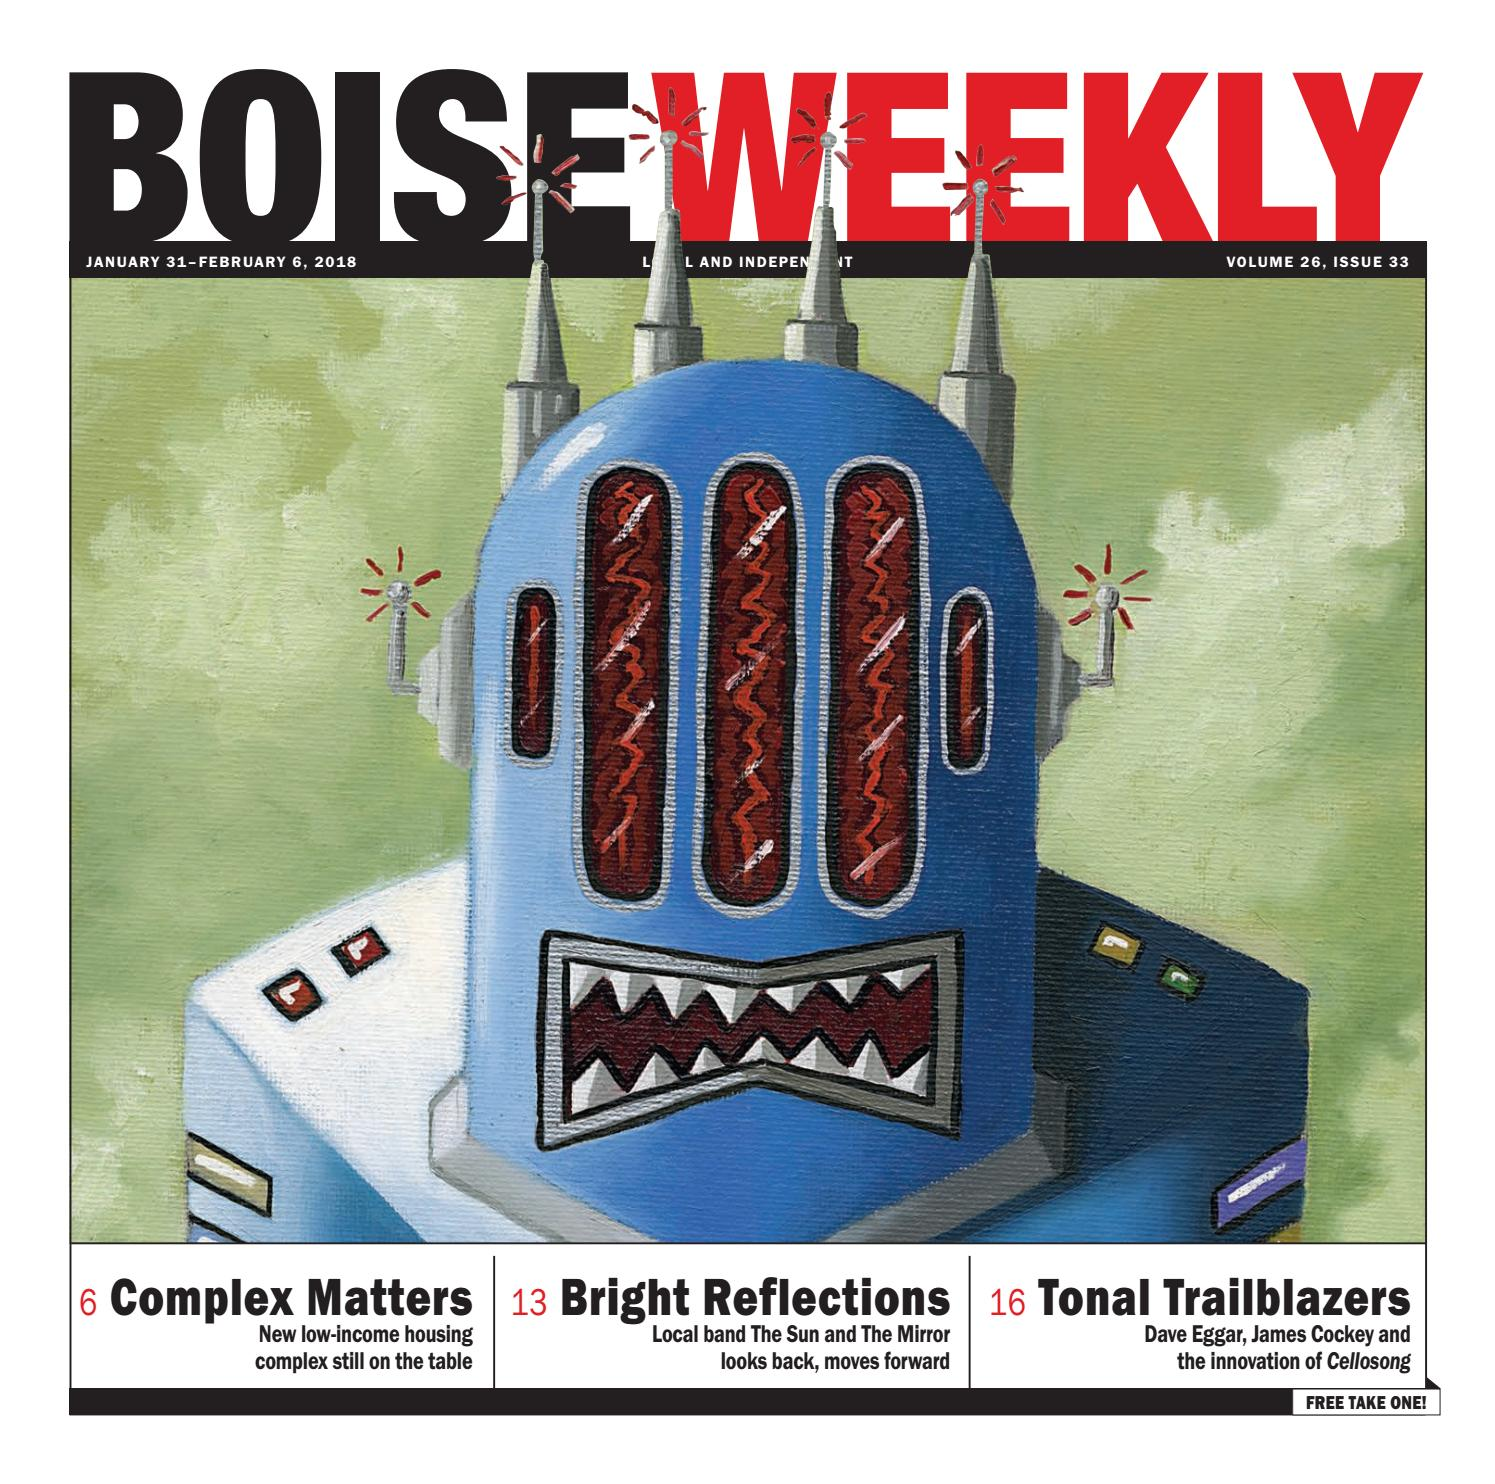 1afd04230 Boise Weekly Vol. 26 Issue 33 by Boise Weekly - issuu